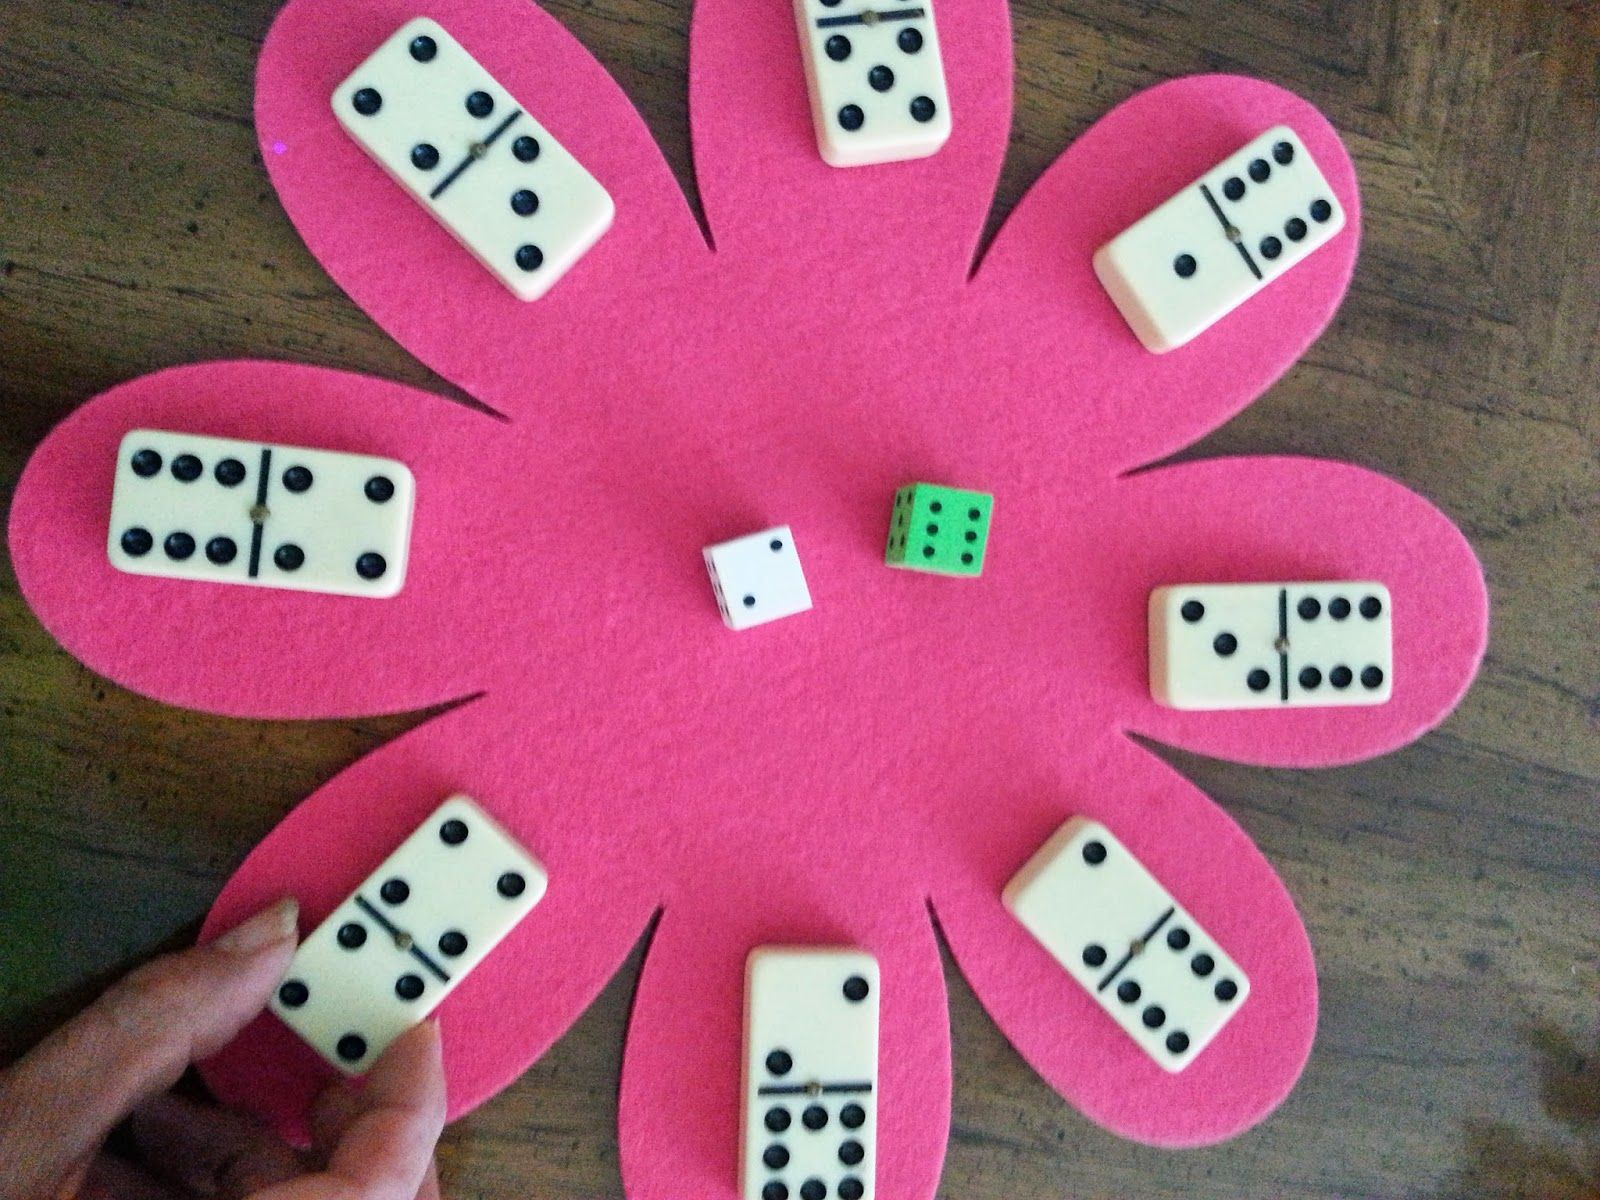 Spring Math Games With Dice And Dominos